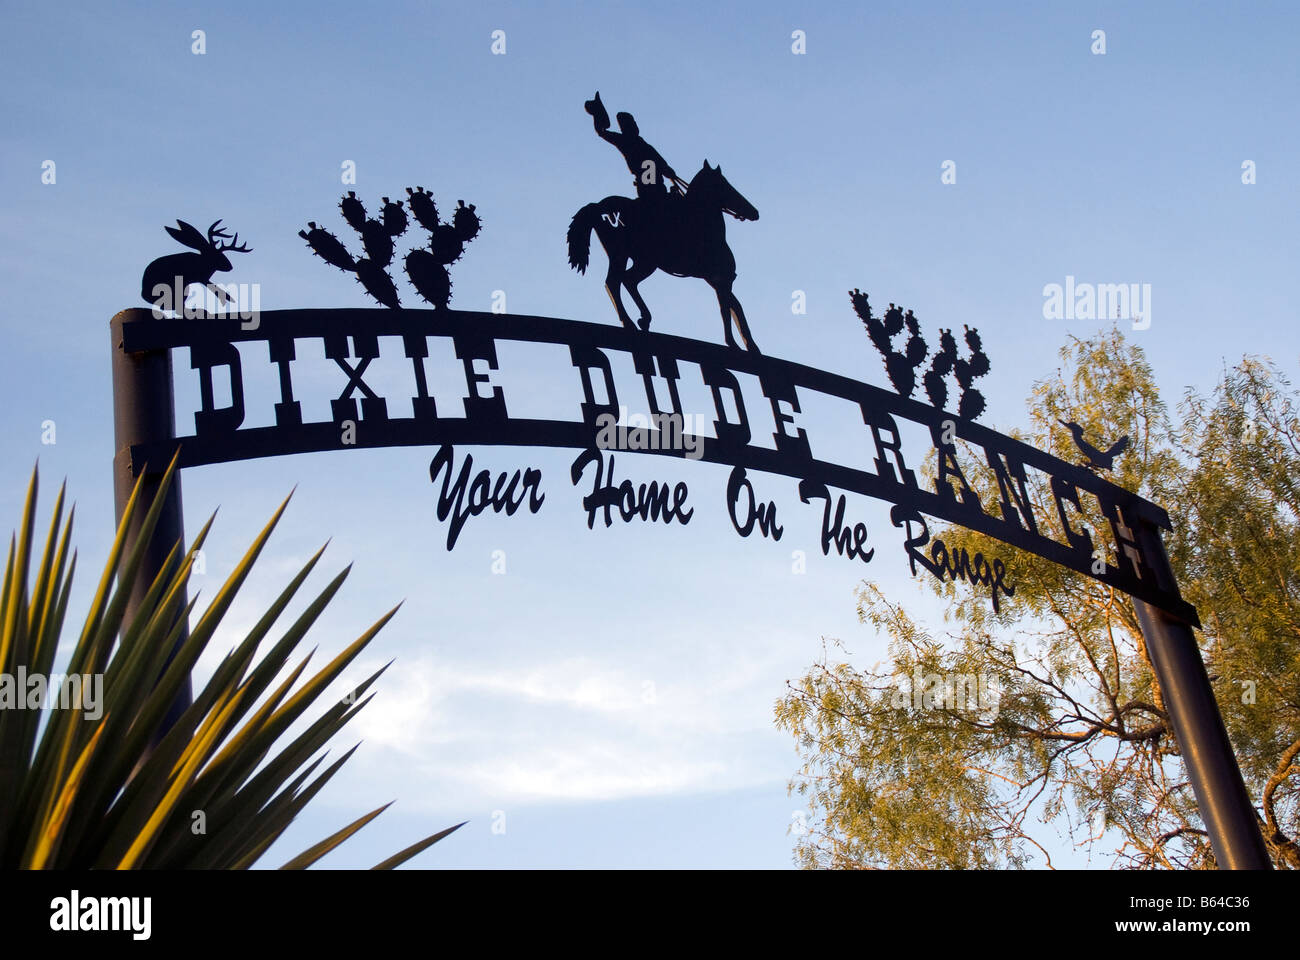 Texas Hill Country, Dixie Dude Ranch, gate sign at entrance to ranch - Stock Image